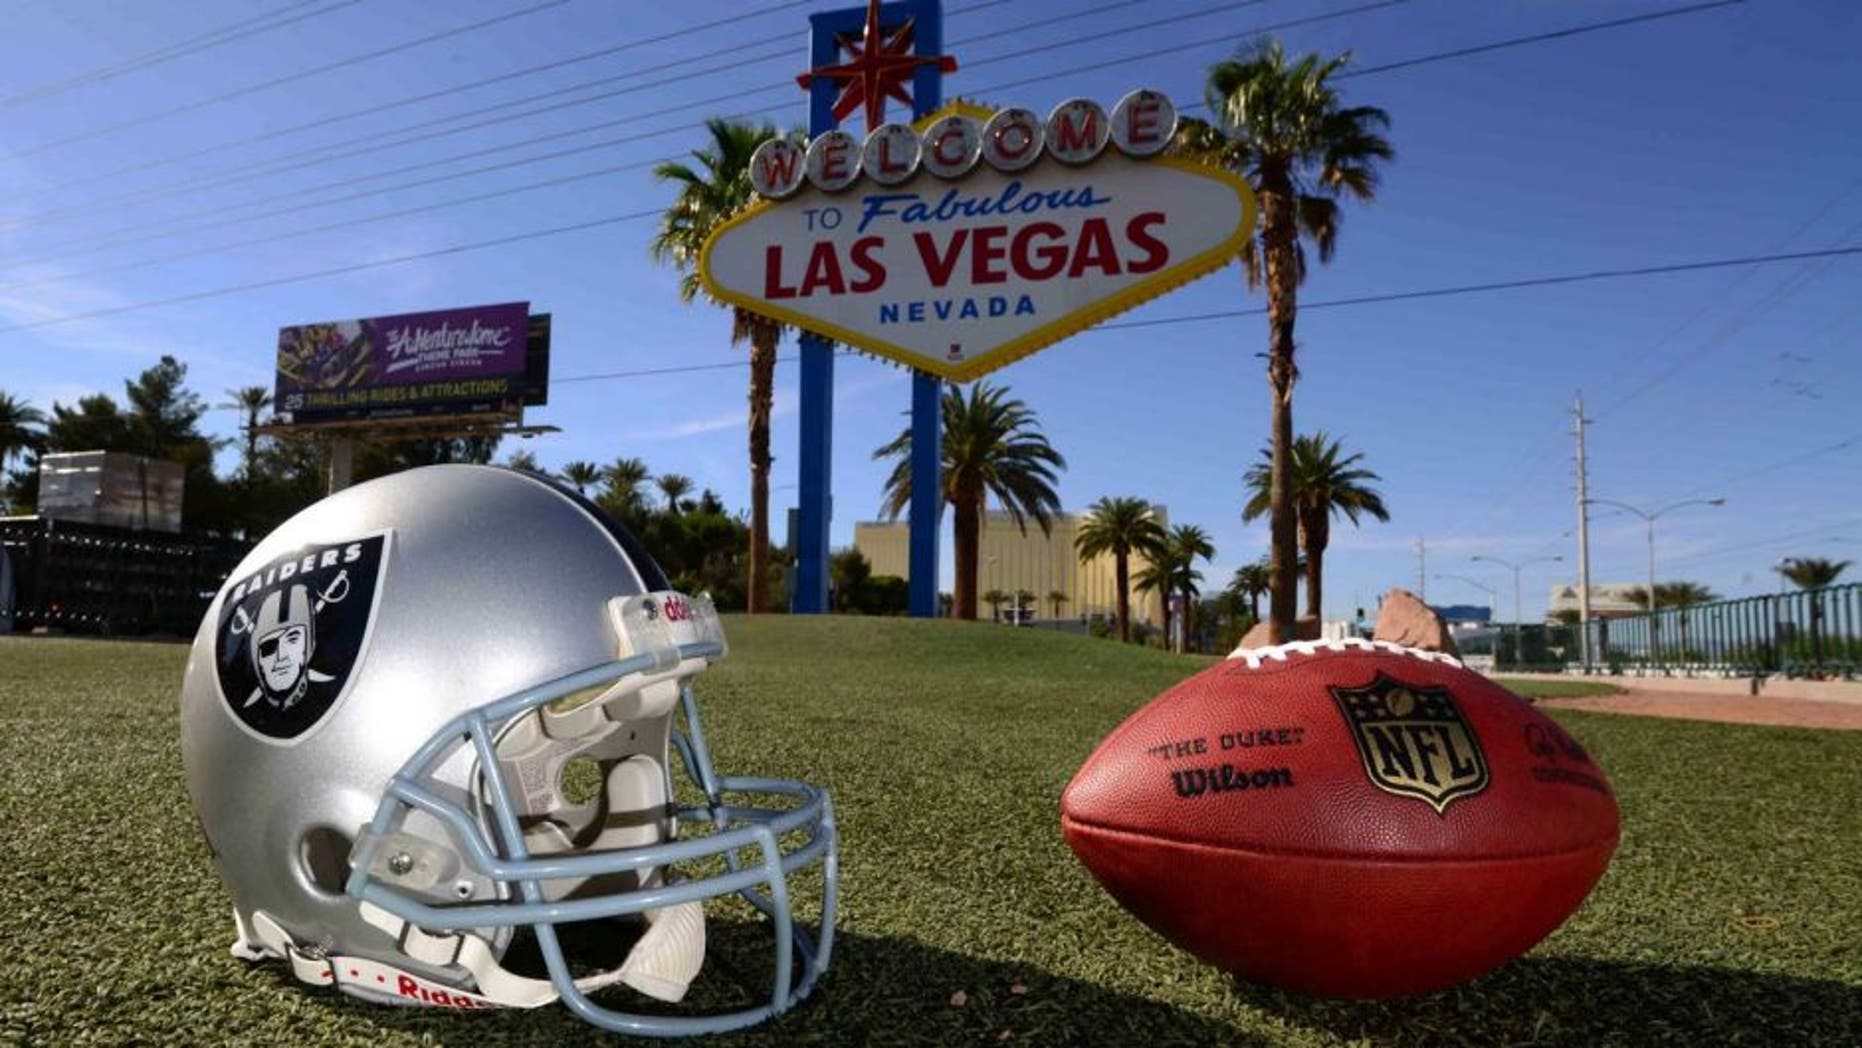 "May 11, 2016; Las Vegas, NV, USA; General view of Oakland Raiders helmet and NFL Wilson Duke football at the ""Welcome to Fabulous Las Vegas"" sign on the Las Vegas strip on Las Vegas Blvd. Raiders owner Mark Davis (not pictured) has pledged $500 million toward building a 65,000-seat domed stadium in Las Vegas at a total cost of $1.4 billion. NFL commissioner Roger Goodell (not pictured) said Davis can explore his options in Las Vegas but would require 24 of 32 owners to approve the move. Mandatory Credit: Kirby Lee-USA TODAY Sports"